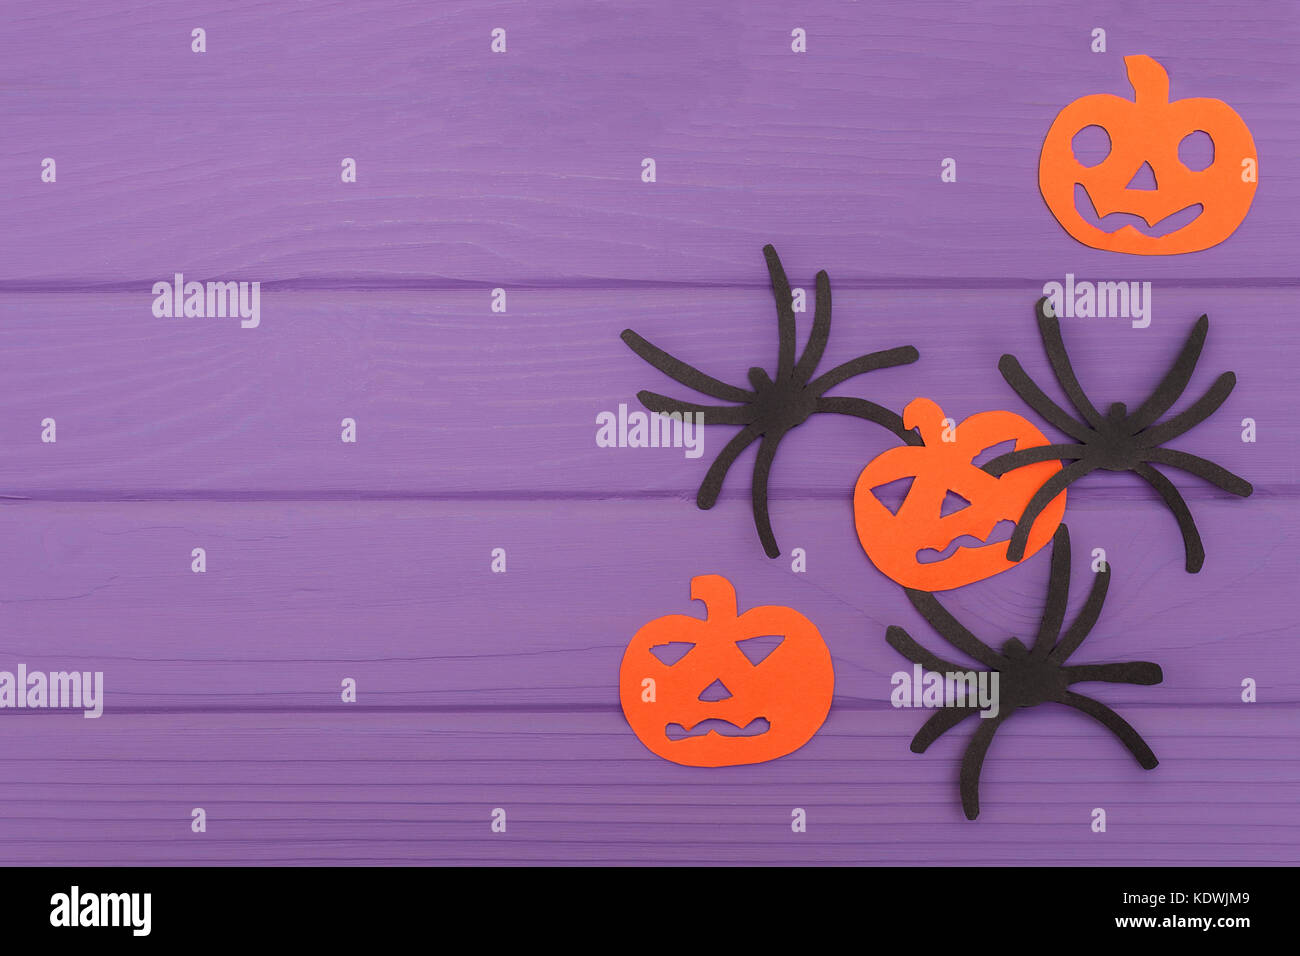 The spiders and pumpkins halloween silhouettes cut out of paper on purple wooden board. Halloween holiday - Stock Image